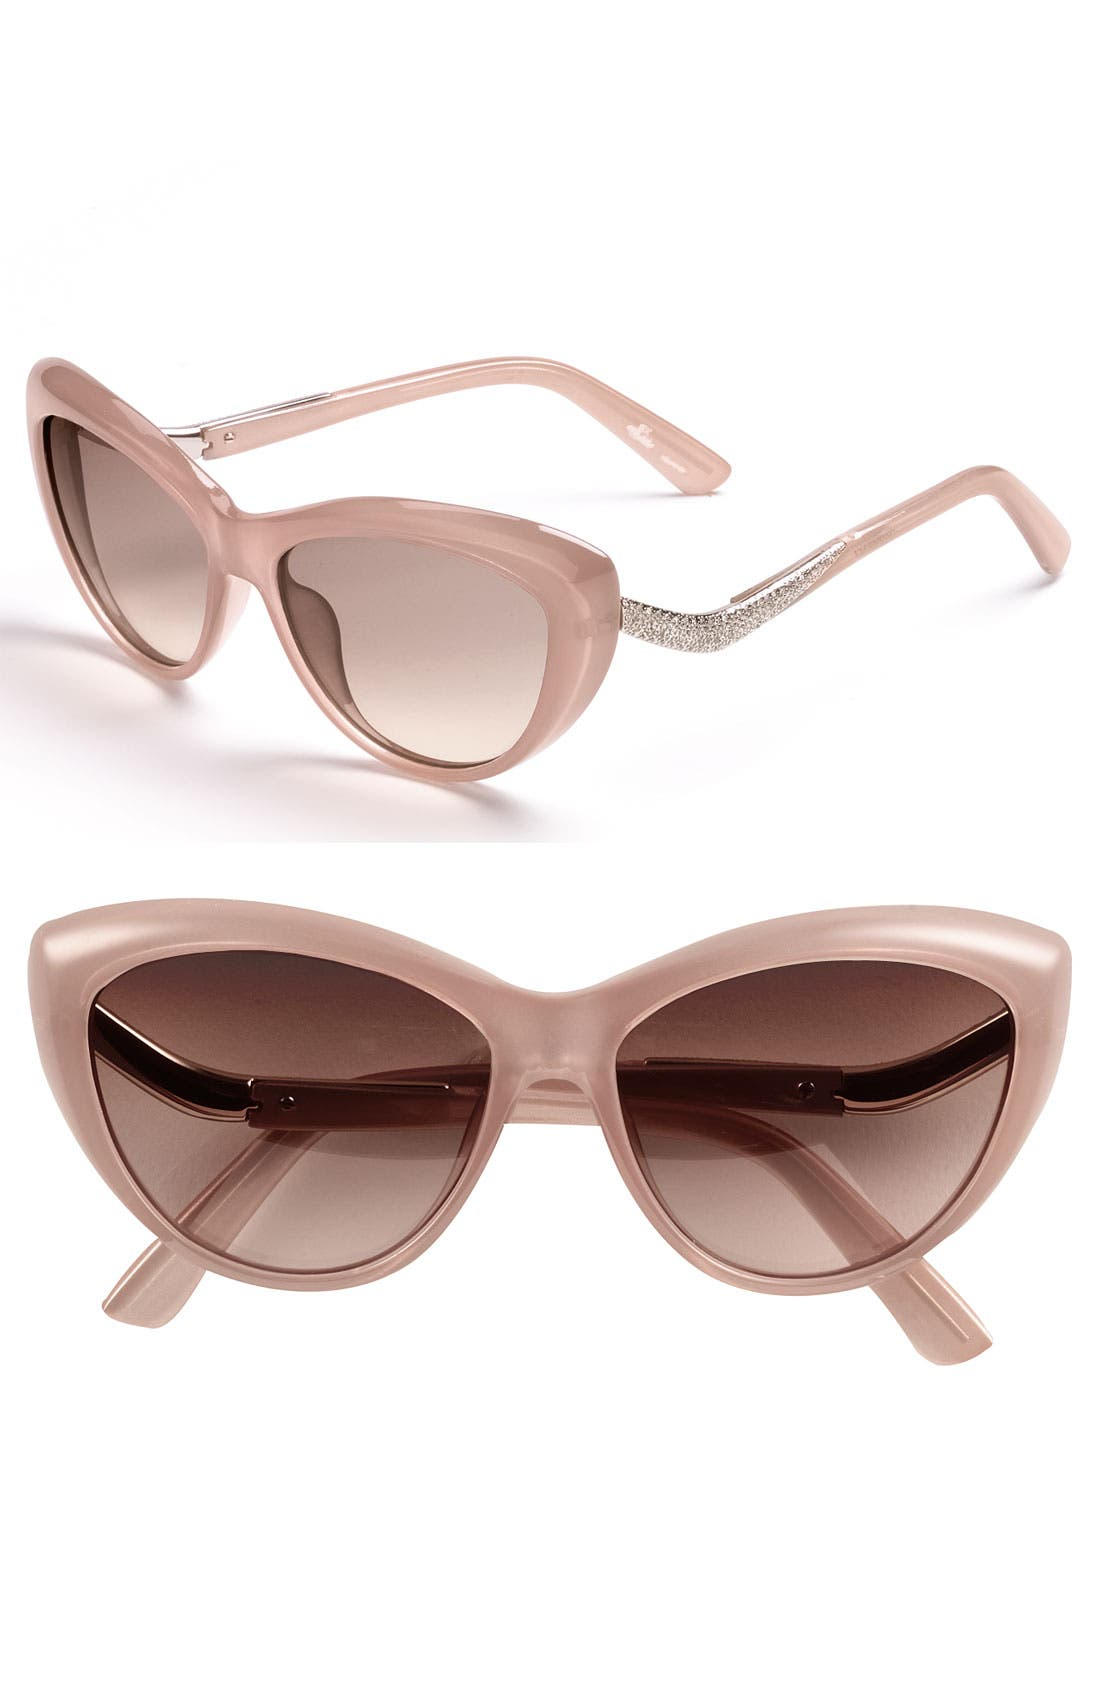 Alternate Image 1 Selected - Valentino 55mm Cat Eye Sunglasses